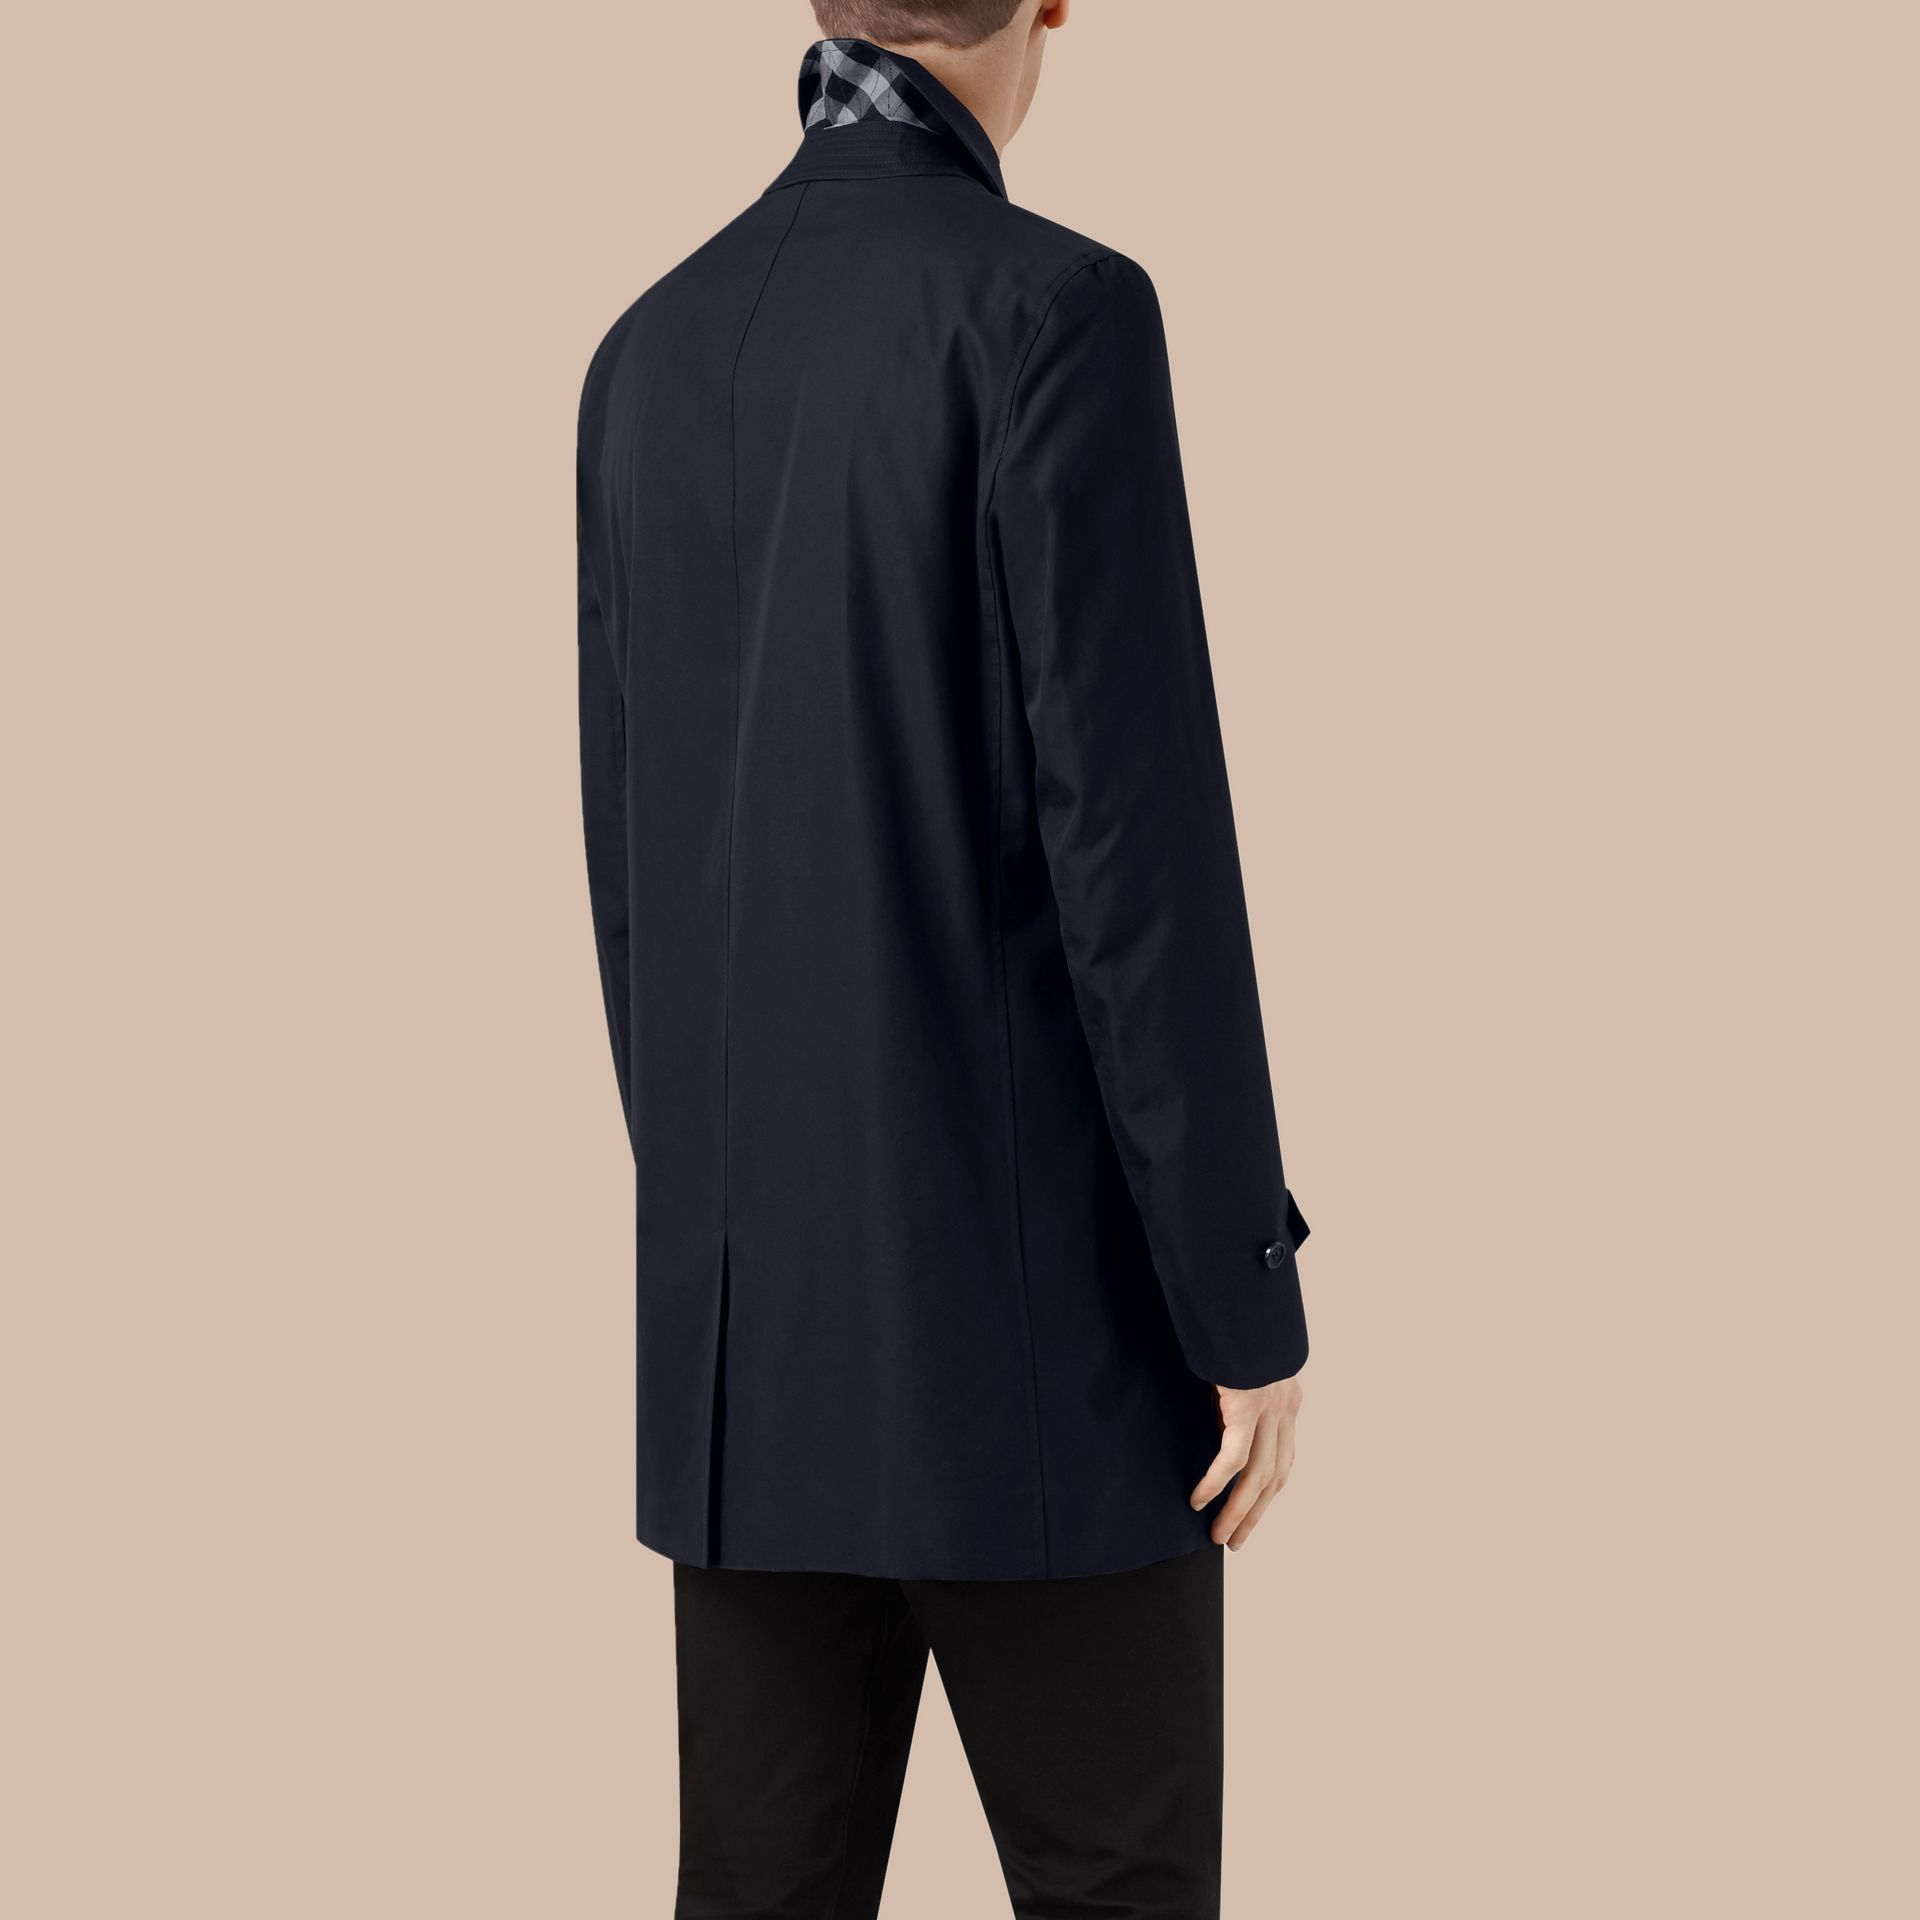 Cotton Gabardine Car Coat Navy - gallery image 3